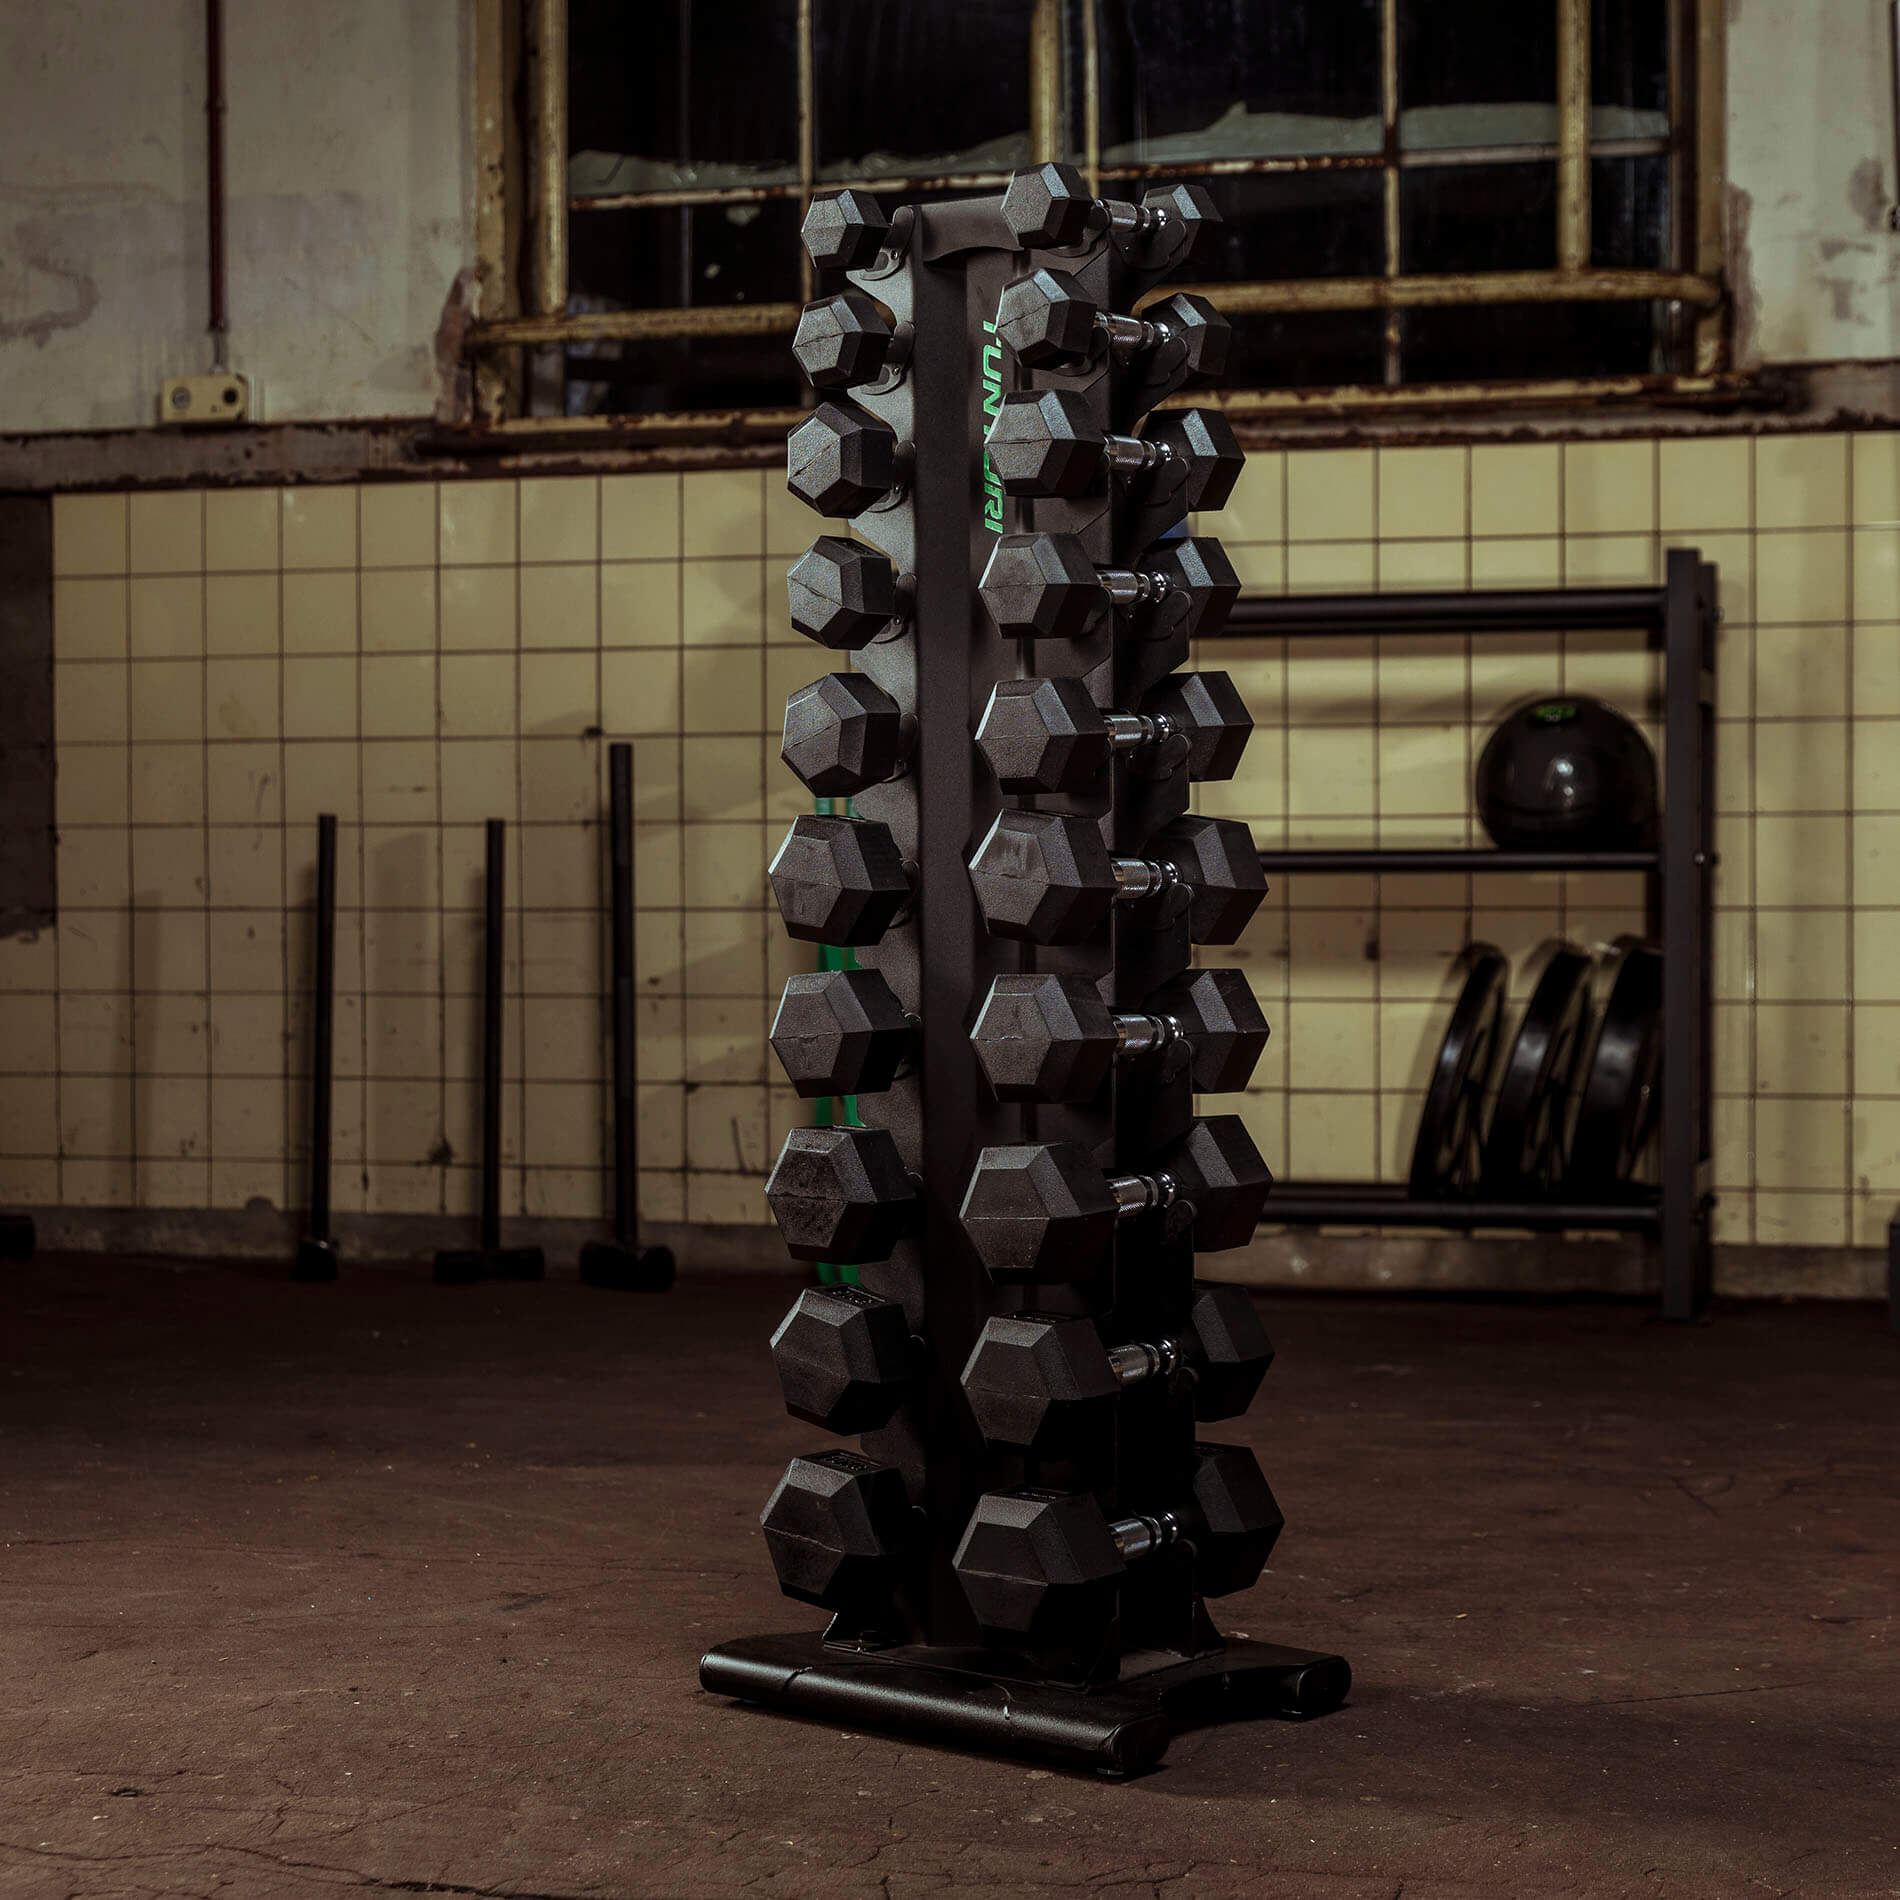 Pro Dumbbell Tower